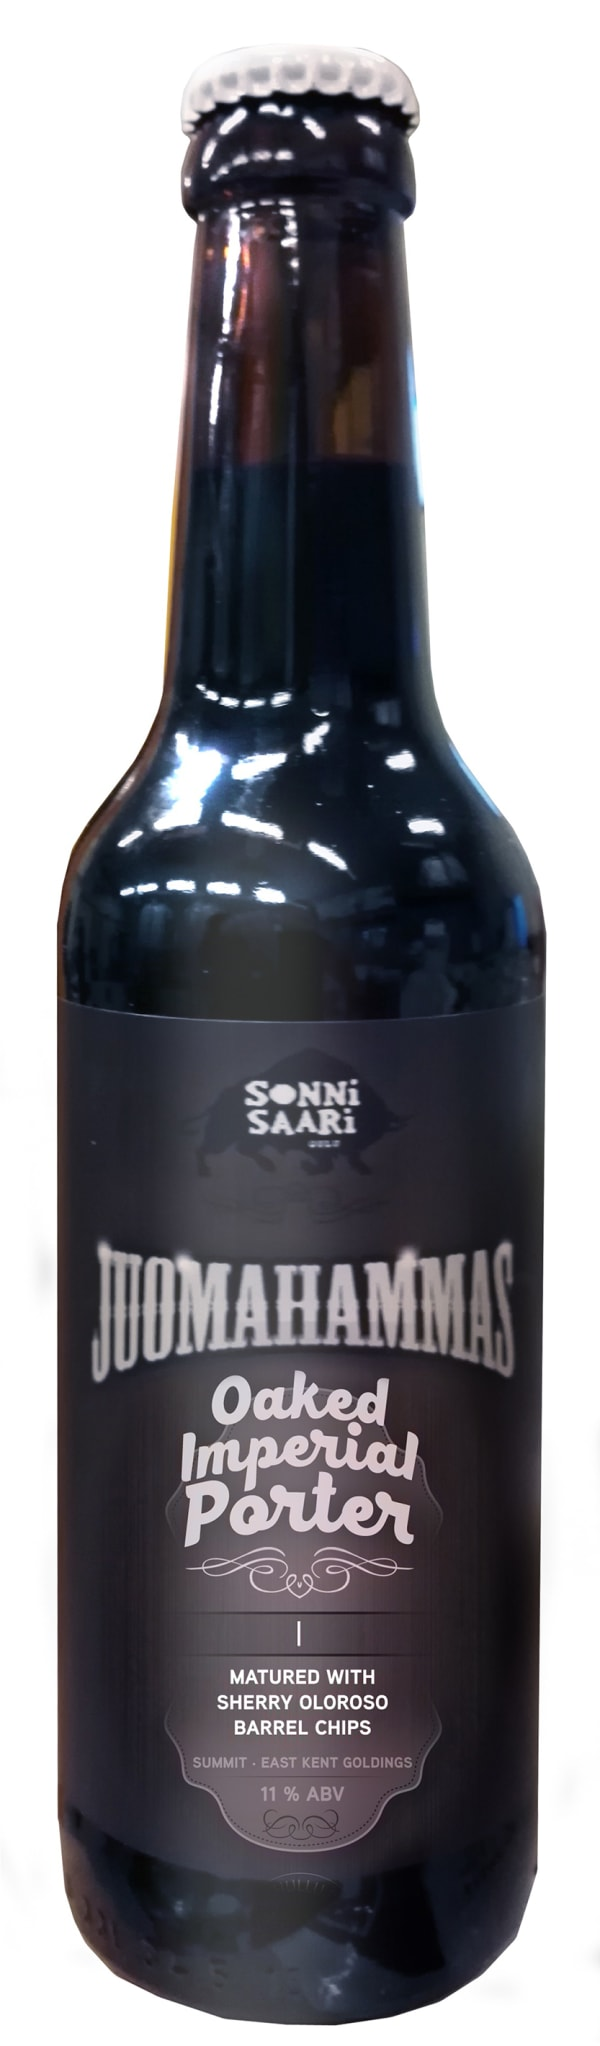 Juomahammas Oaked Imperial Porter I Matured With Sherry Oloroso Barrel Chips